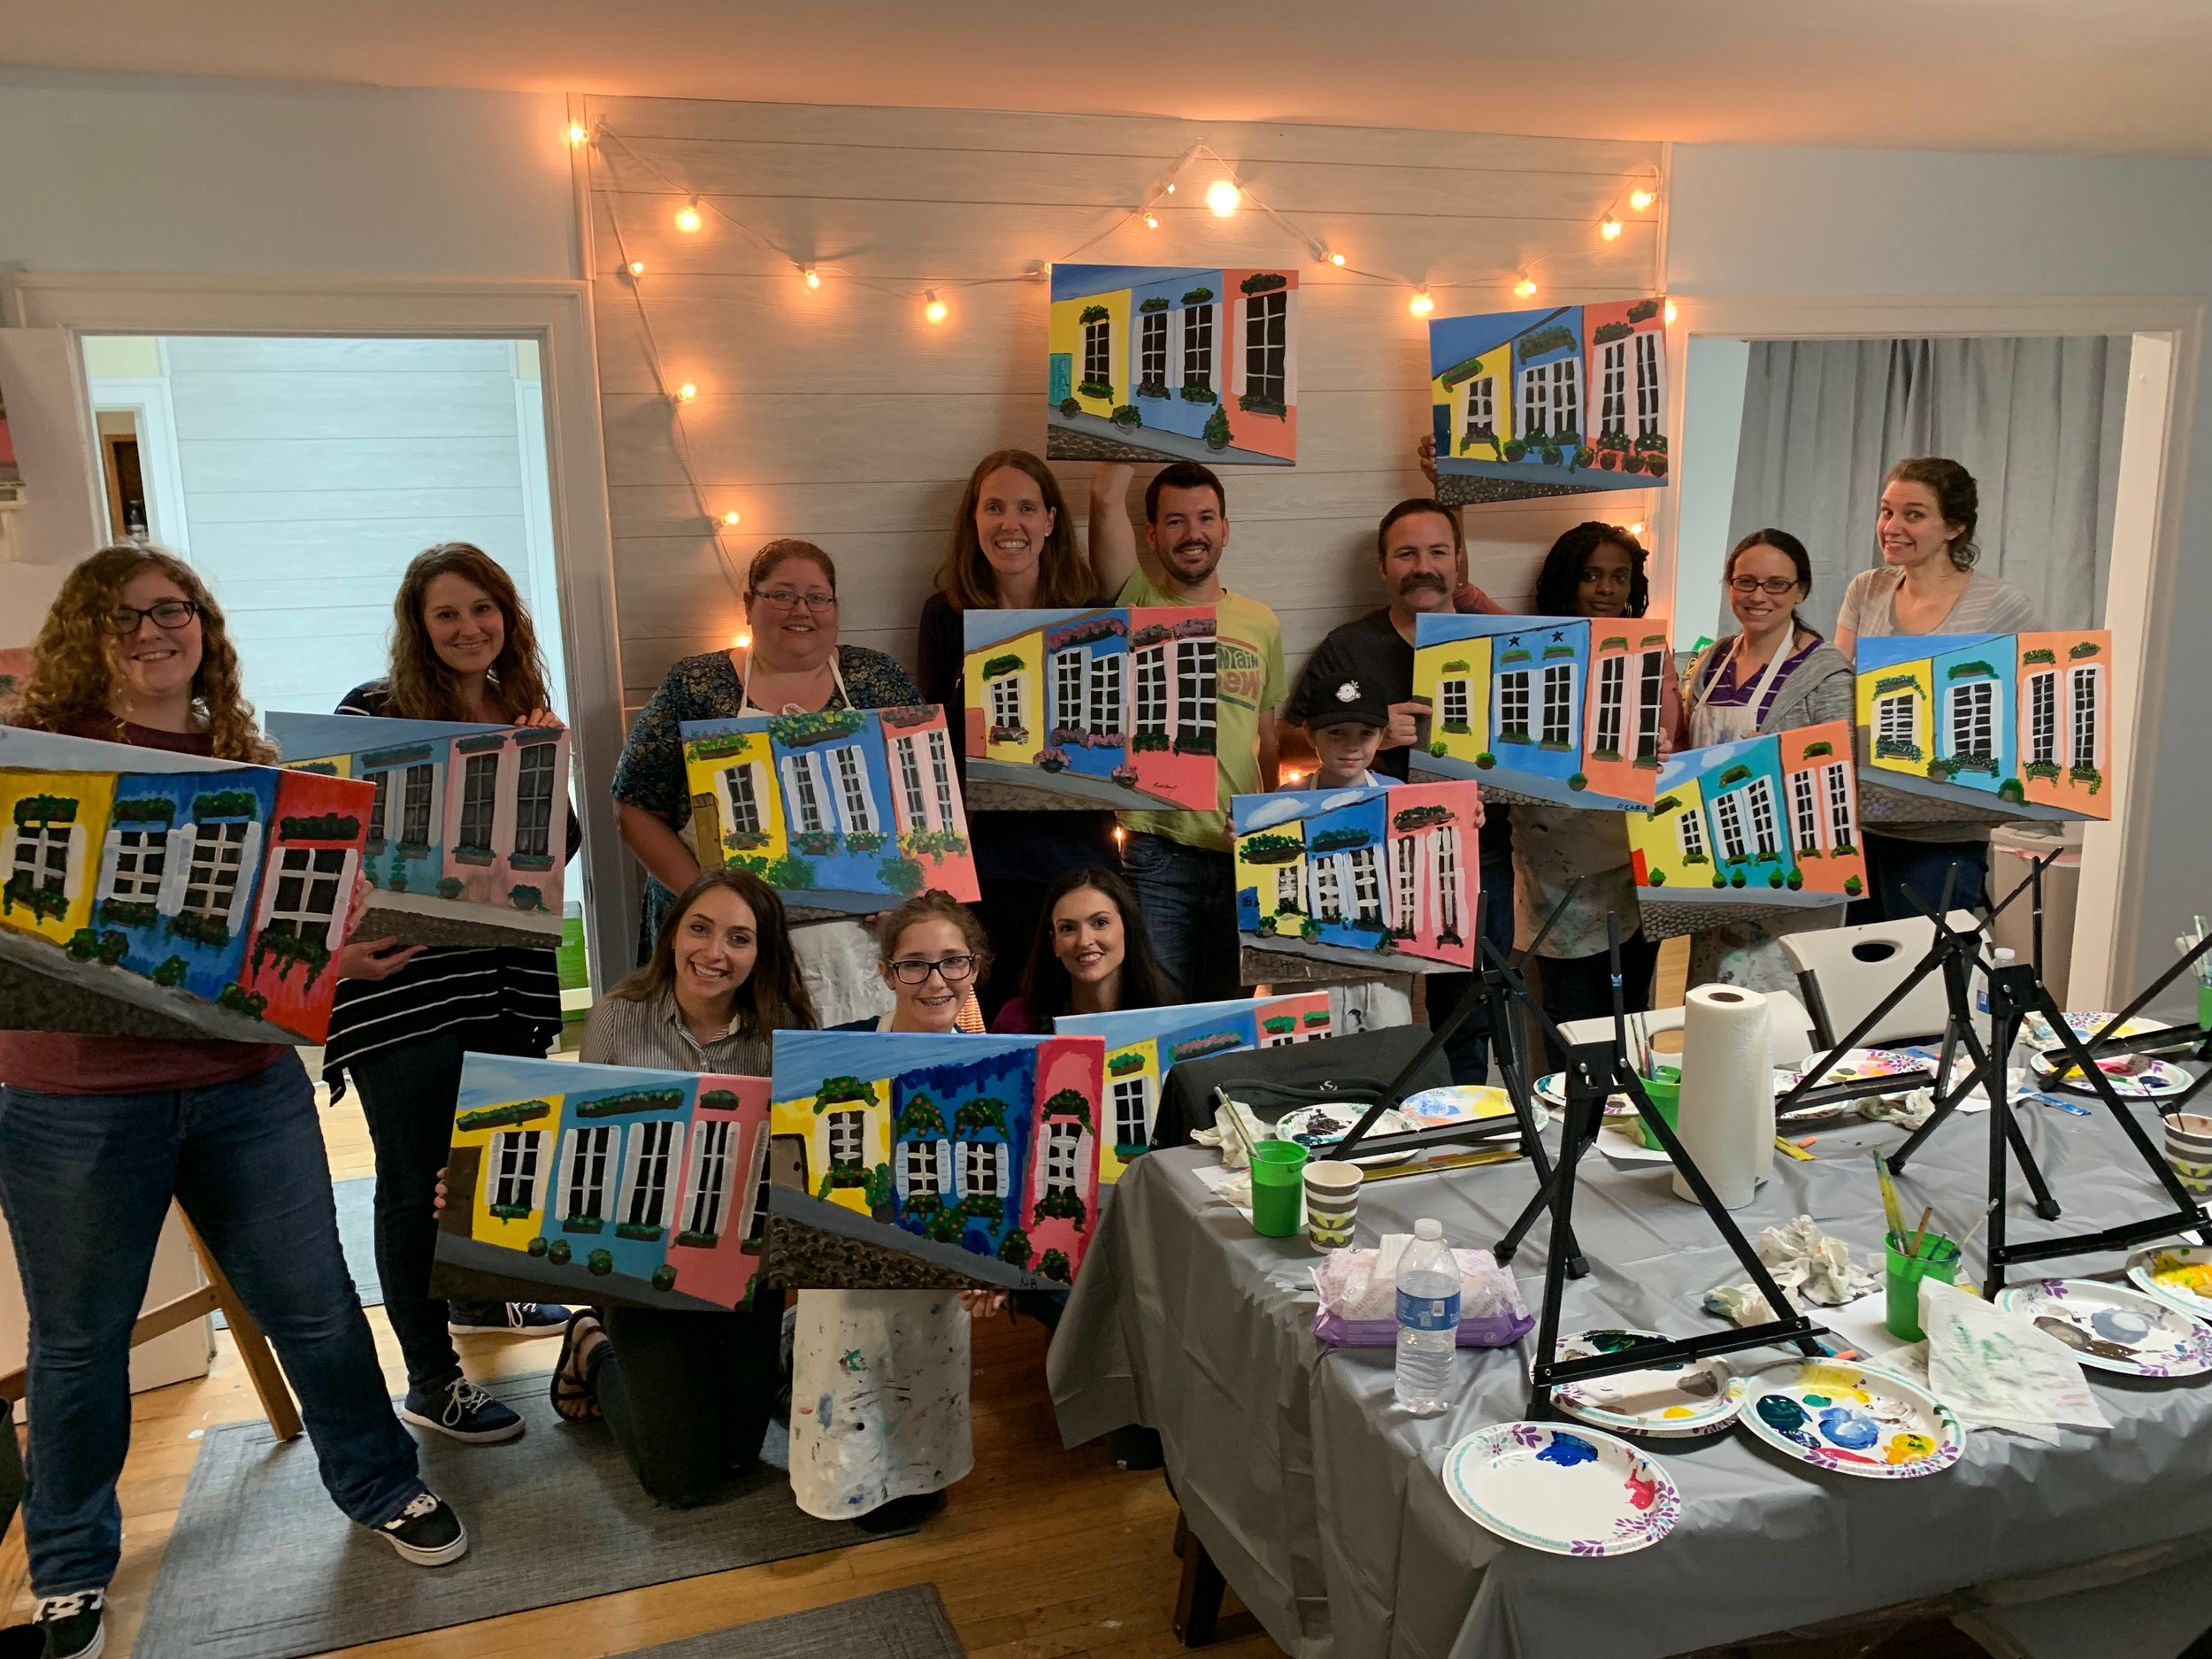 PAINT & SIP CLASSES $35 TUES-SAT - Looking for something fun to do with friends, a date, or just have some me time? Join us for one of our social Paint & Sip Classes! Guaranteed a good time! We have great music, bottled water and a coffee bar gratis. ** Make sure you check the top of our page and Facebook for all of our Promos to SAVE on your reservations. See y'all soon!